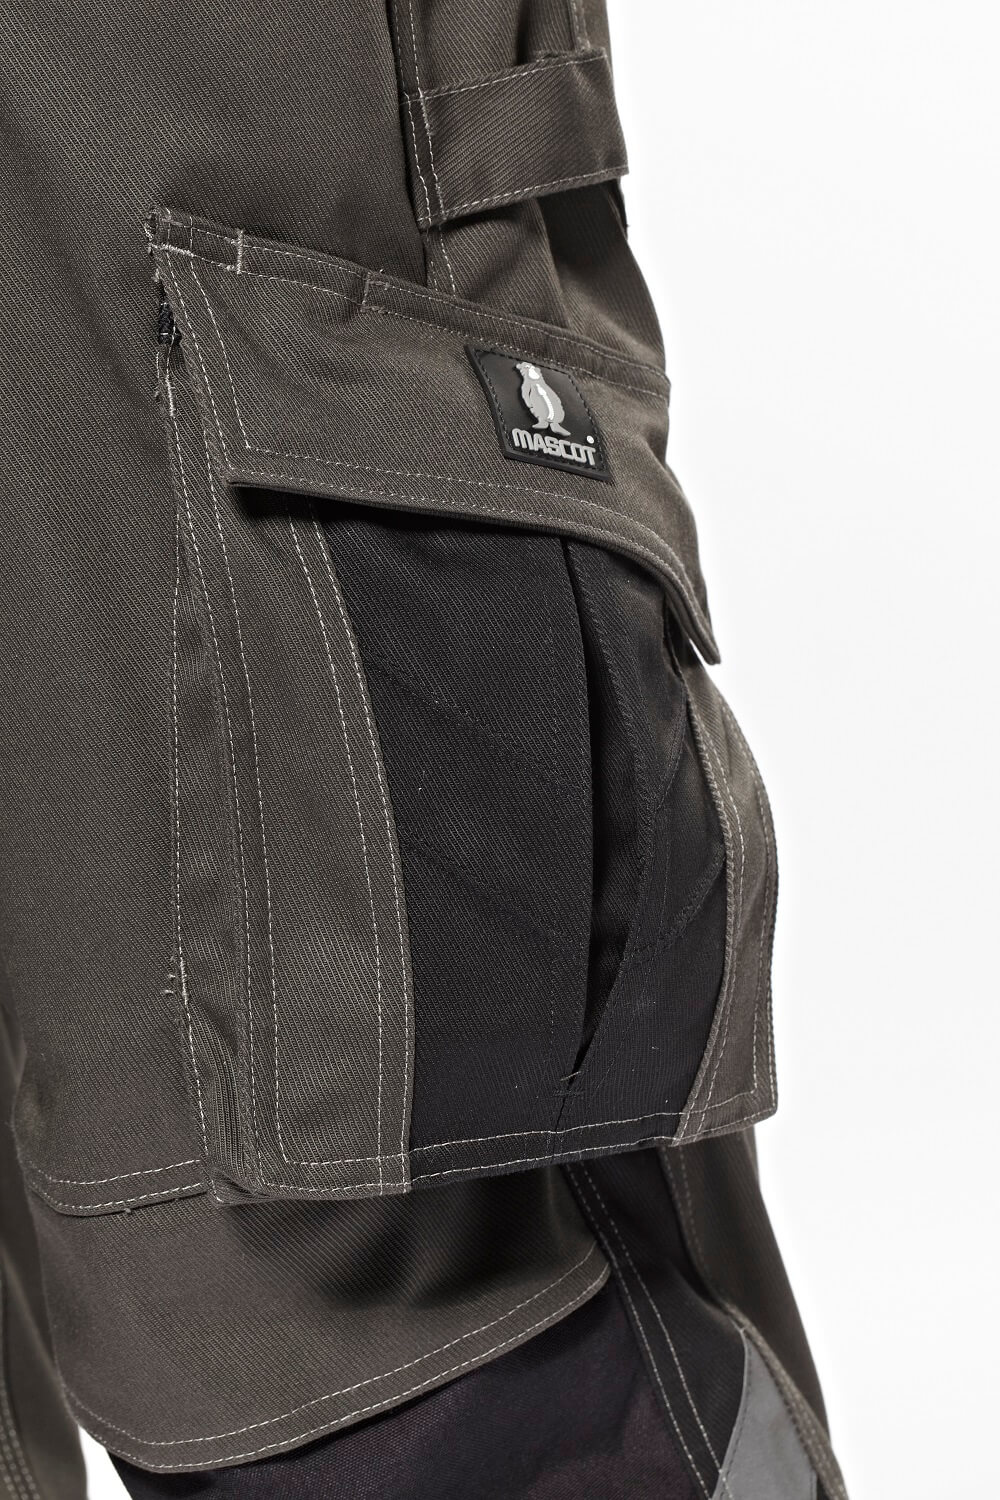 Thigh pocket. - Detail - MASCOT® UNIQUE